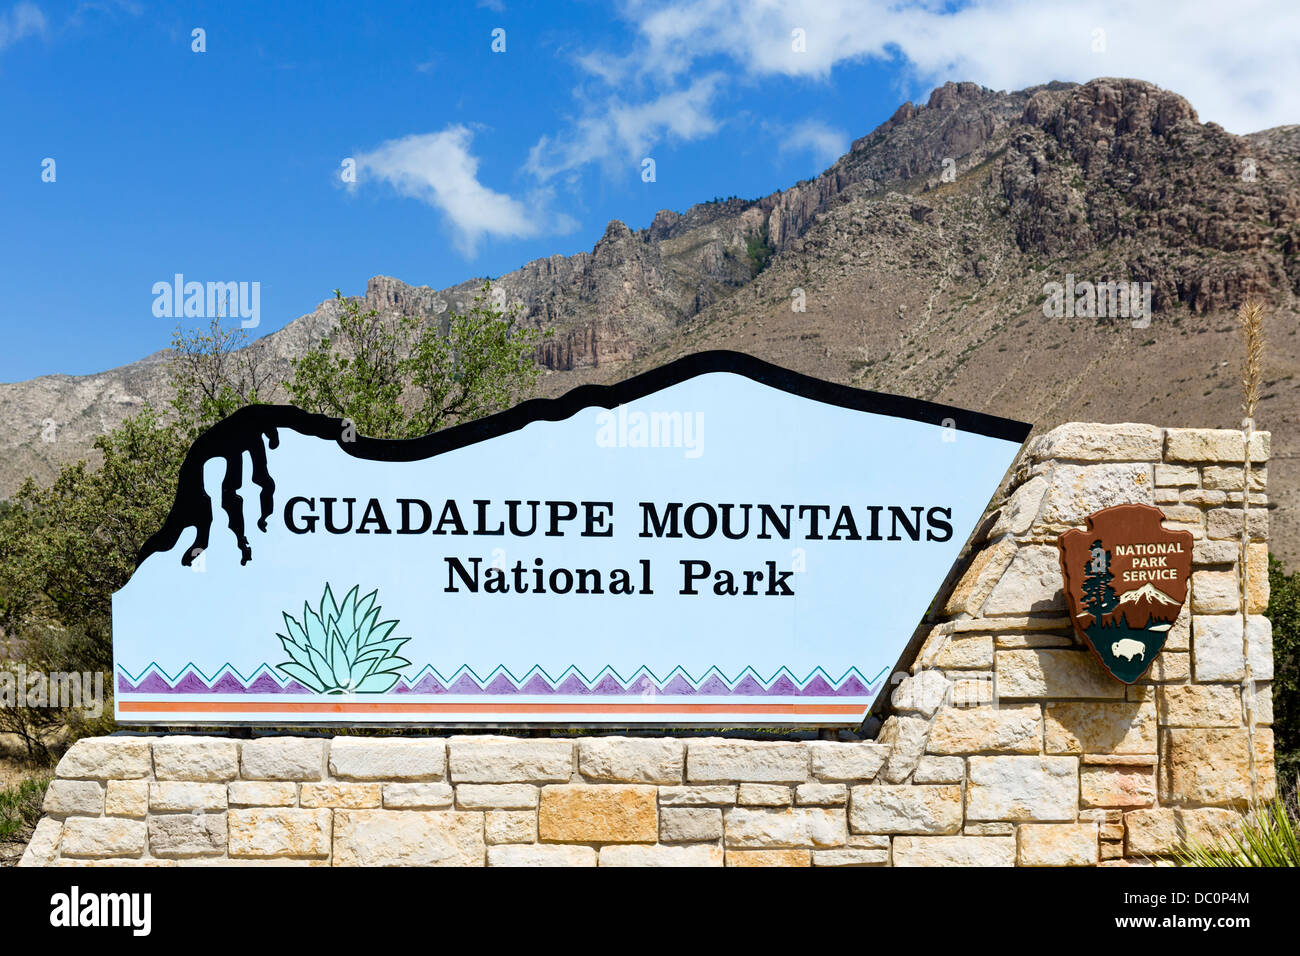 Entrance to the Guadalupe Mountains National Park, Texas, USA - Stock Image